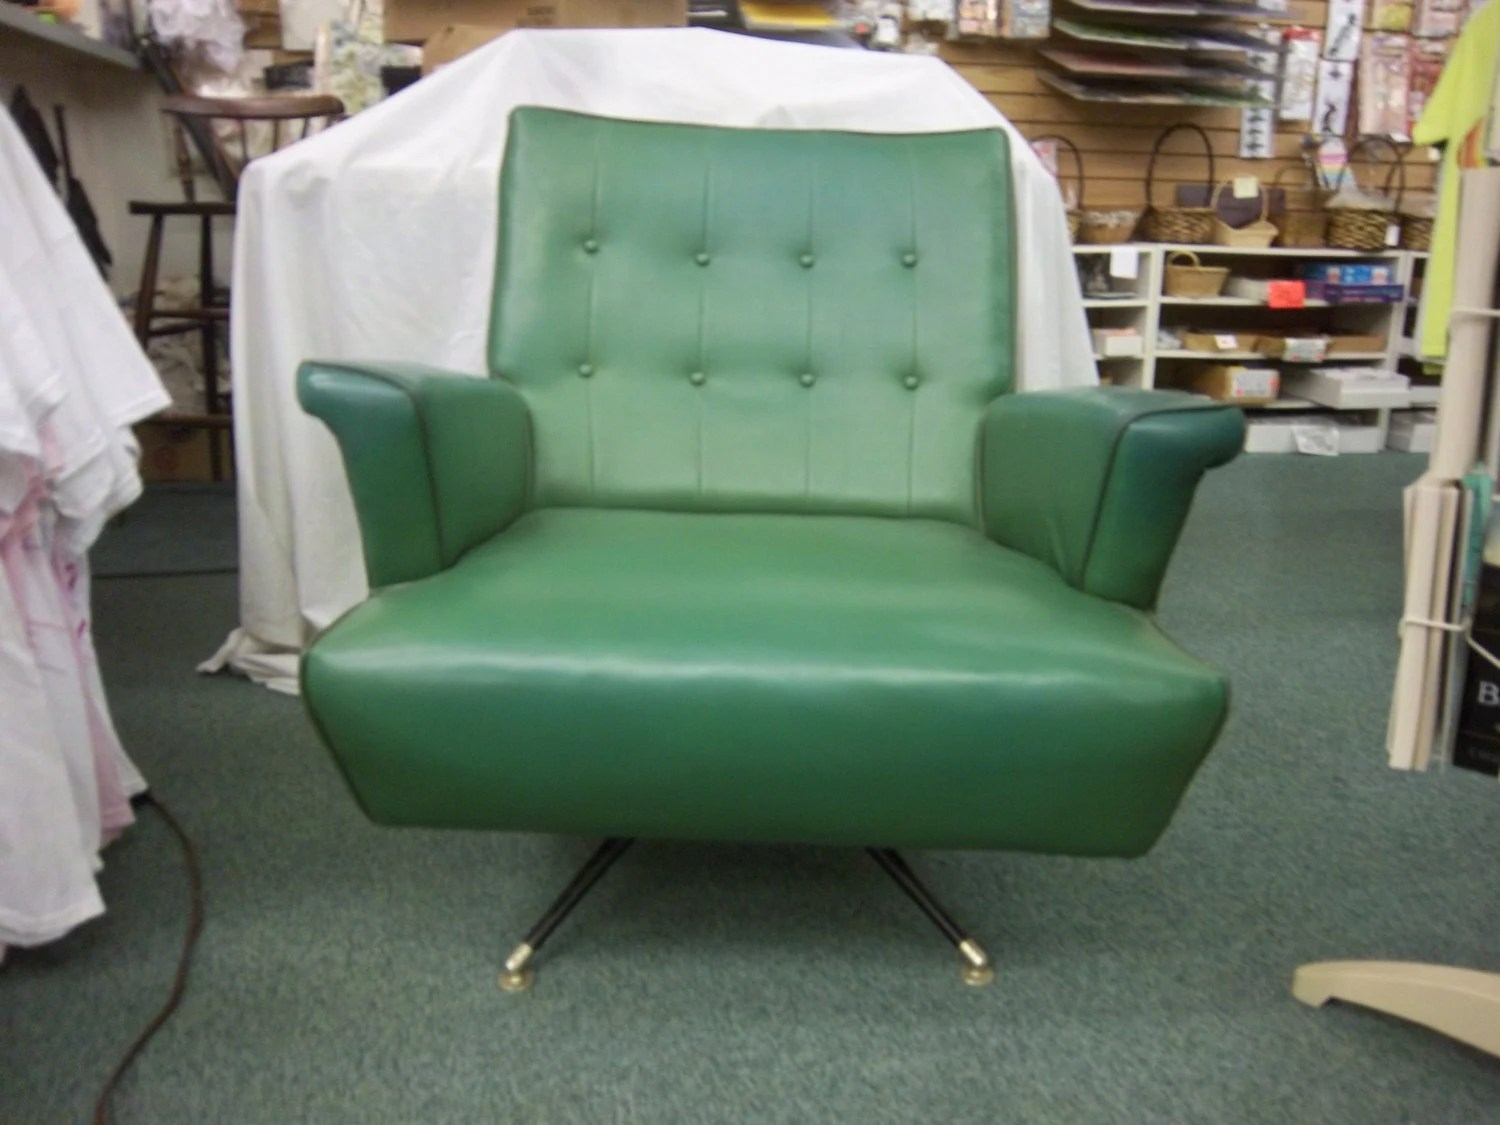 Teal Rocking Chair Vintage Mid Century Modern Gaines Green Teal Vinyl Swivel